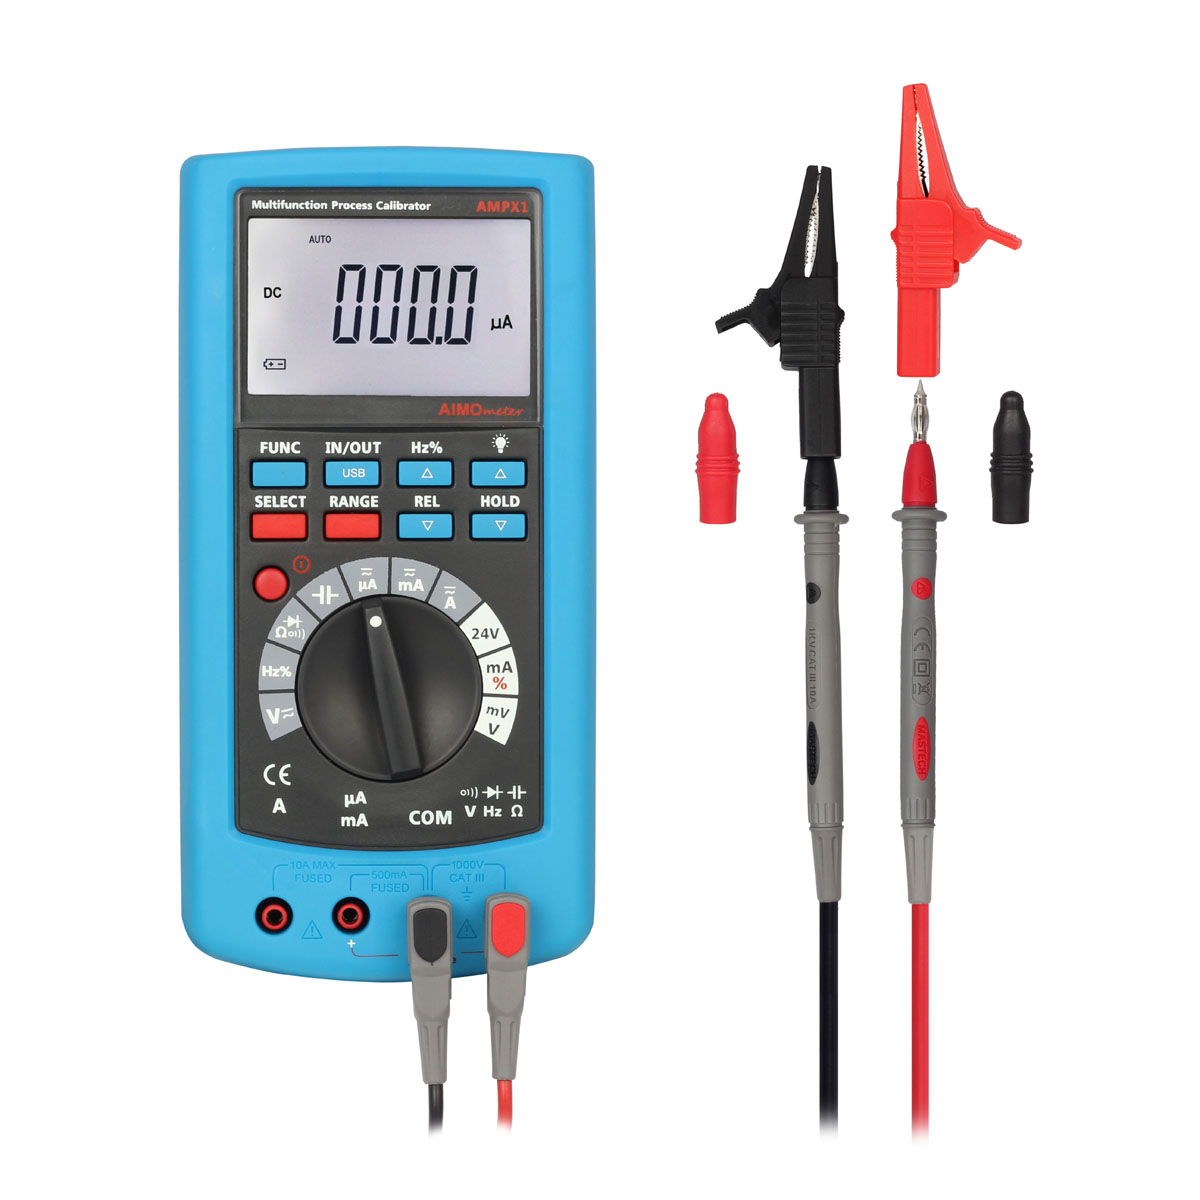 M109 AIMO ampx1 2 in 1 Multifunctional Process Calibrator + Digital Multimeter Voltage Current Calibration Signal Generator